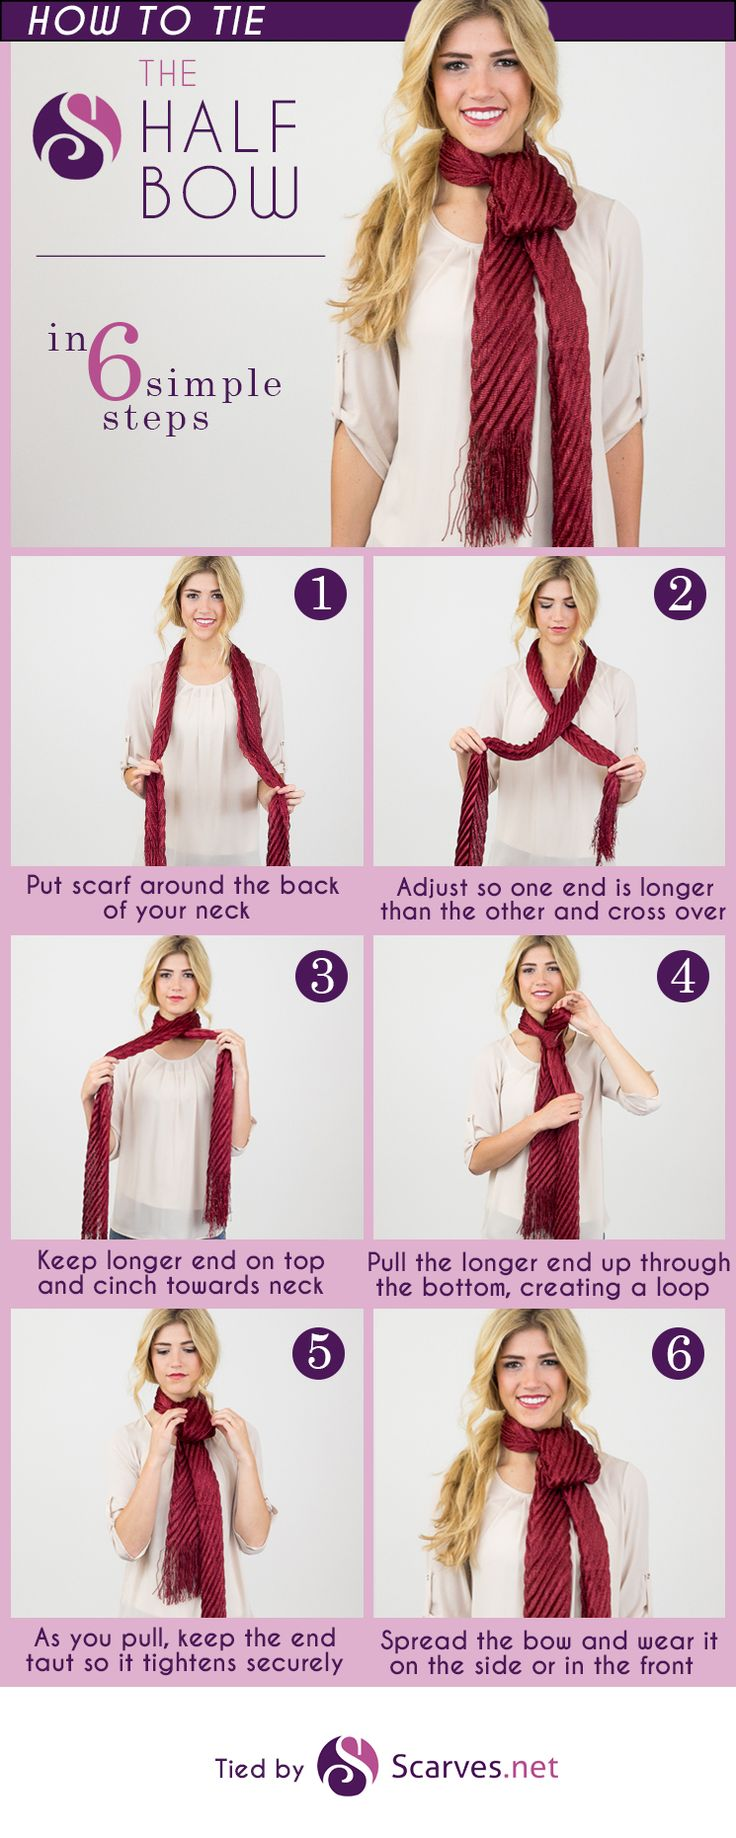 STEP 1 Pull the scarf aroundtheback of your neck. STEP 2 Adjusttheends so that one is longer than the other. STEP 3 Cross the longer ends over the shorter one. STEP 4 Pull the longer end up thr…